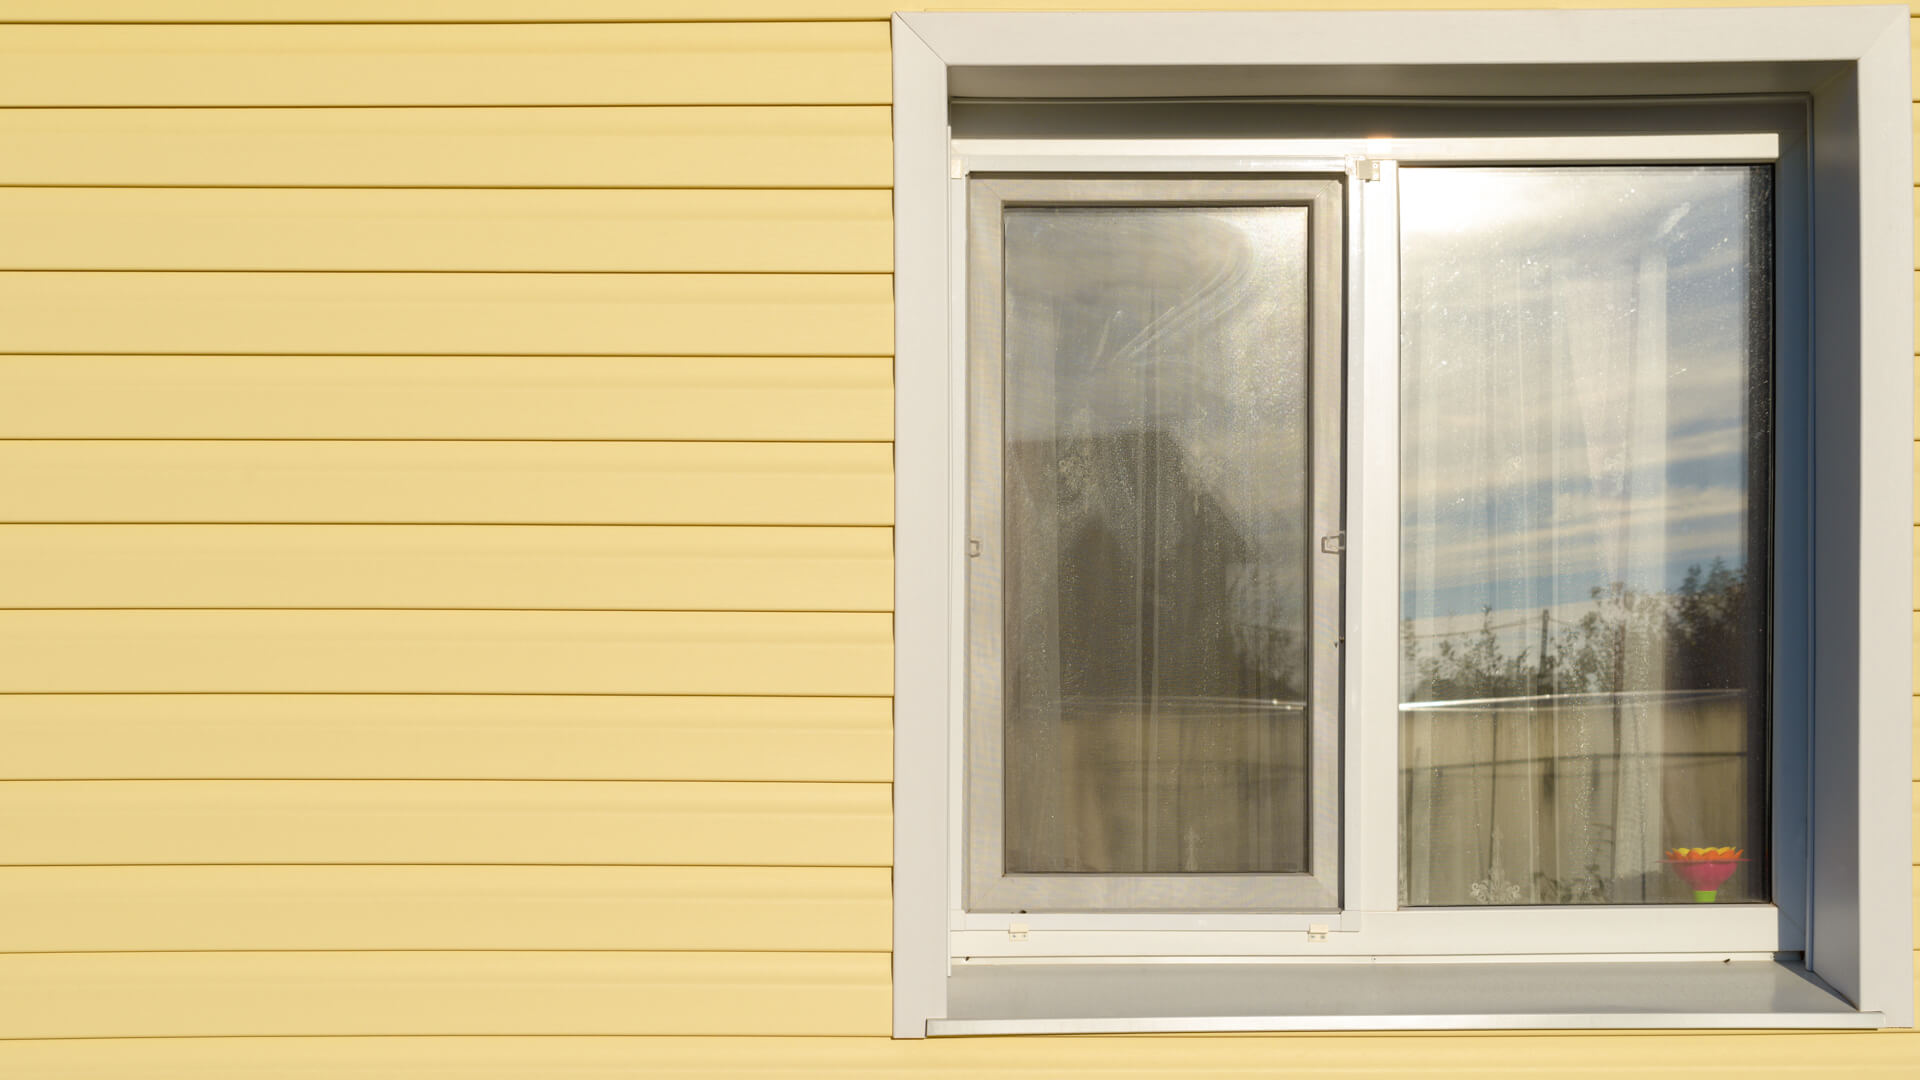 white plastic window on the wall lined with yellow siding.